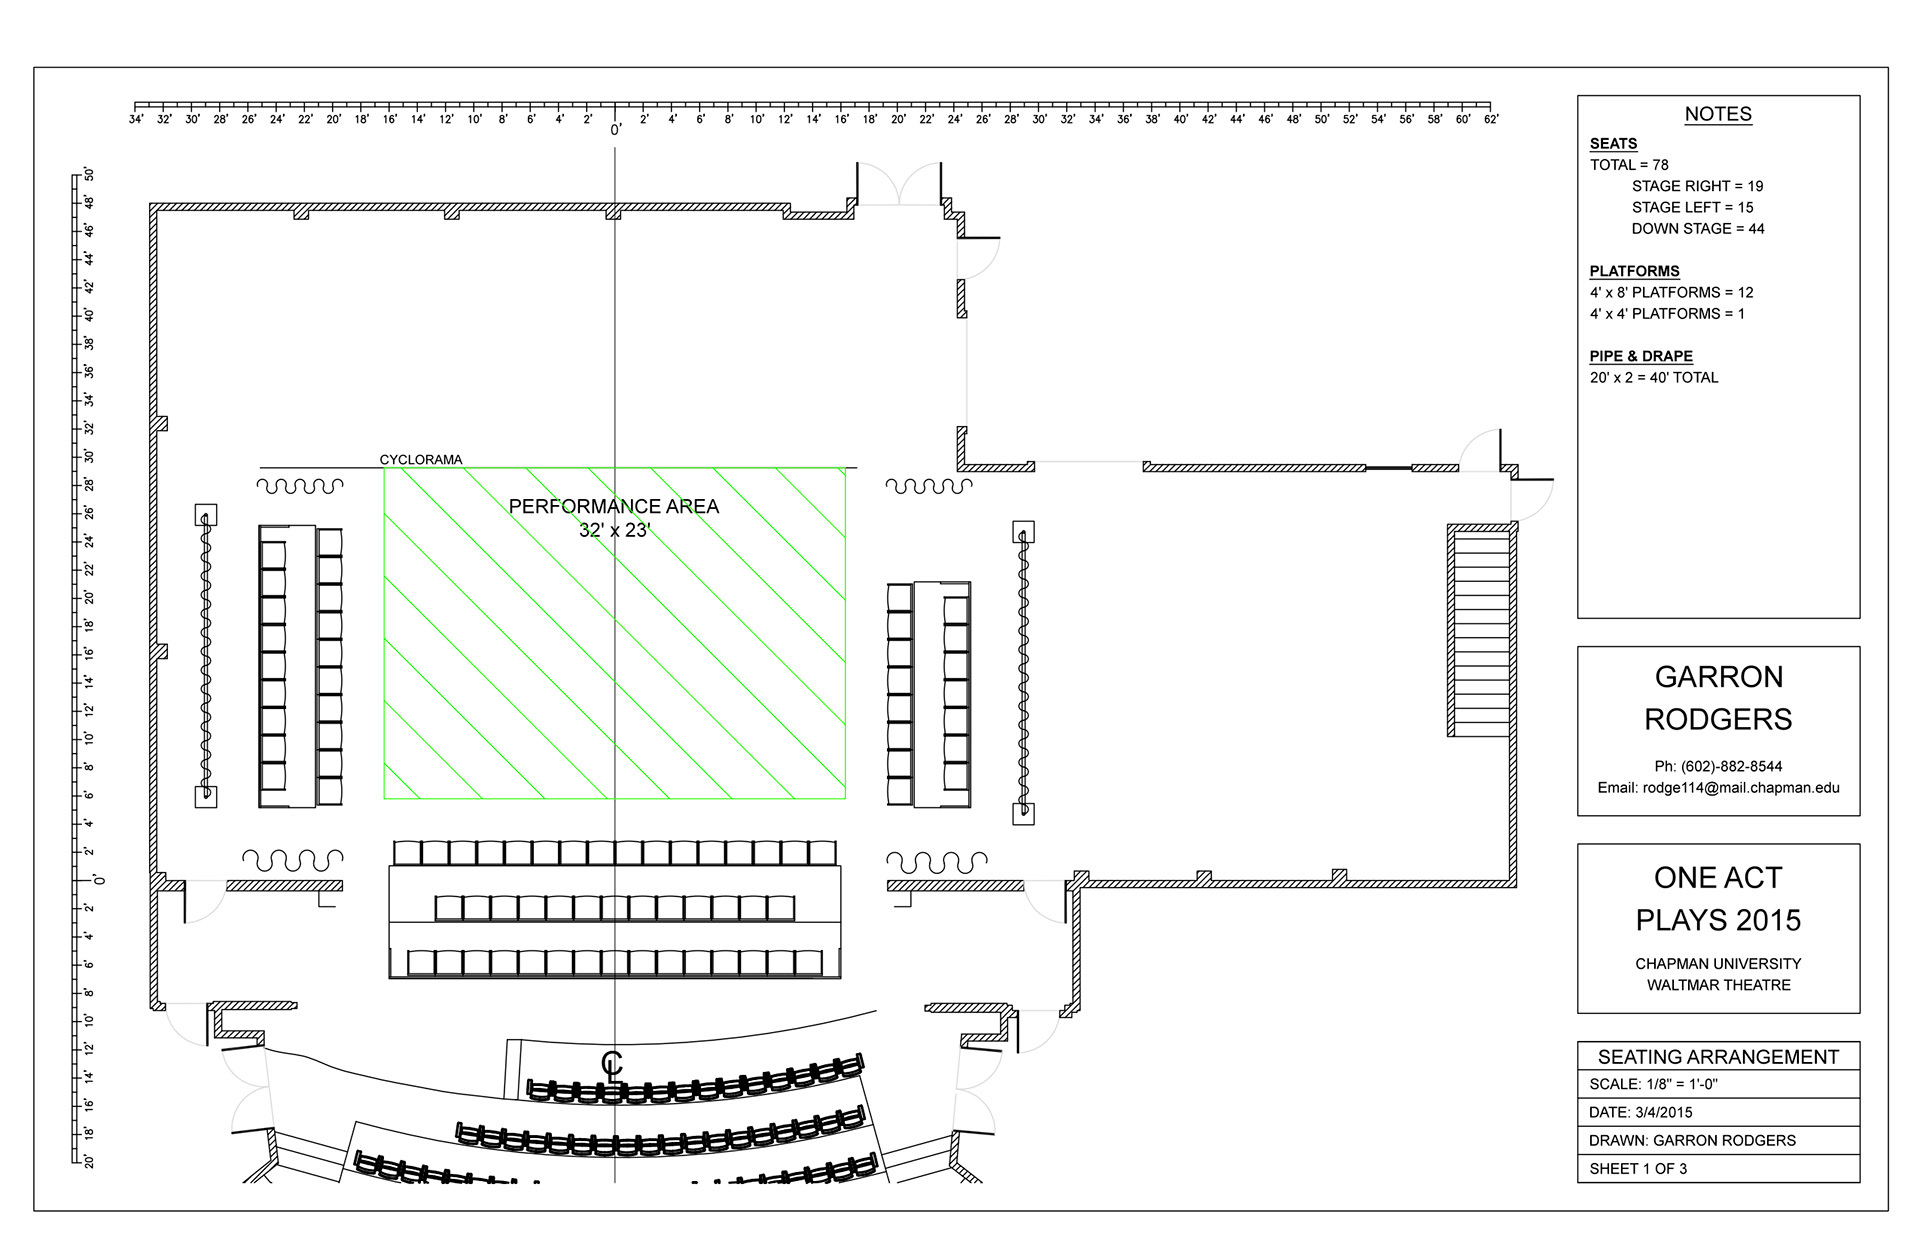 Garron Rodgers Autocad Drafting And Lighting Paperwork Theatre Diagram Light Plot For One Act Plays 2015